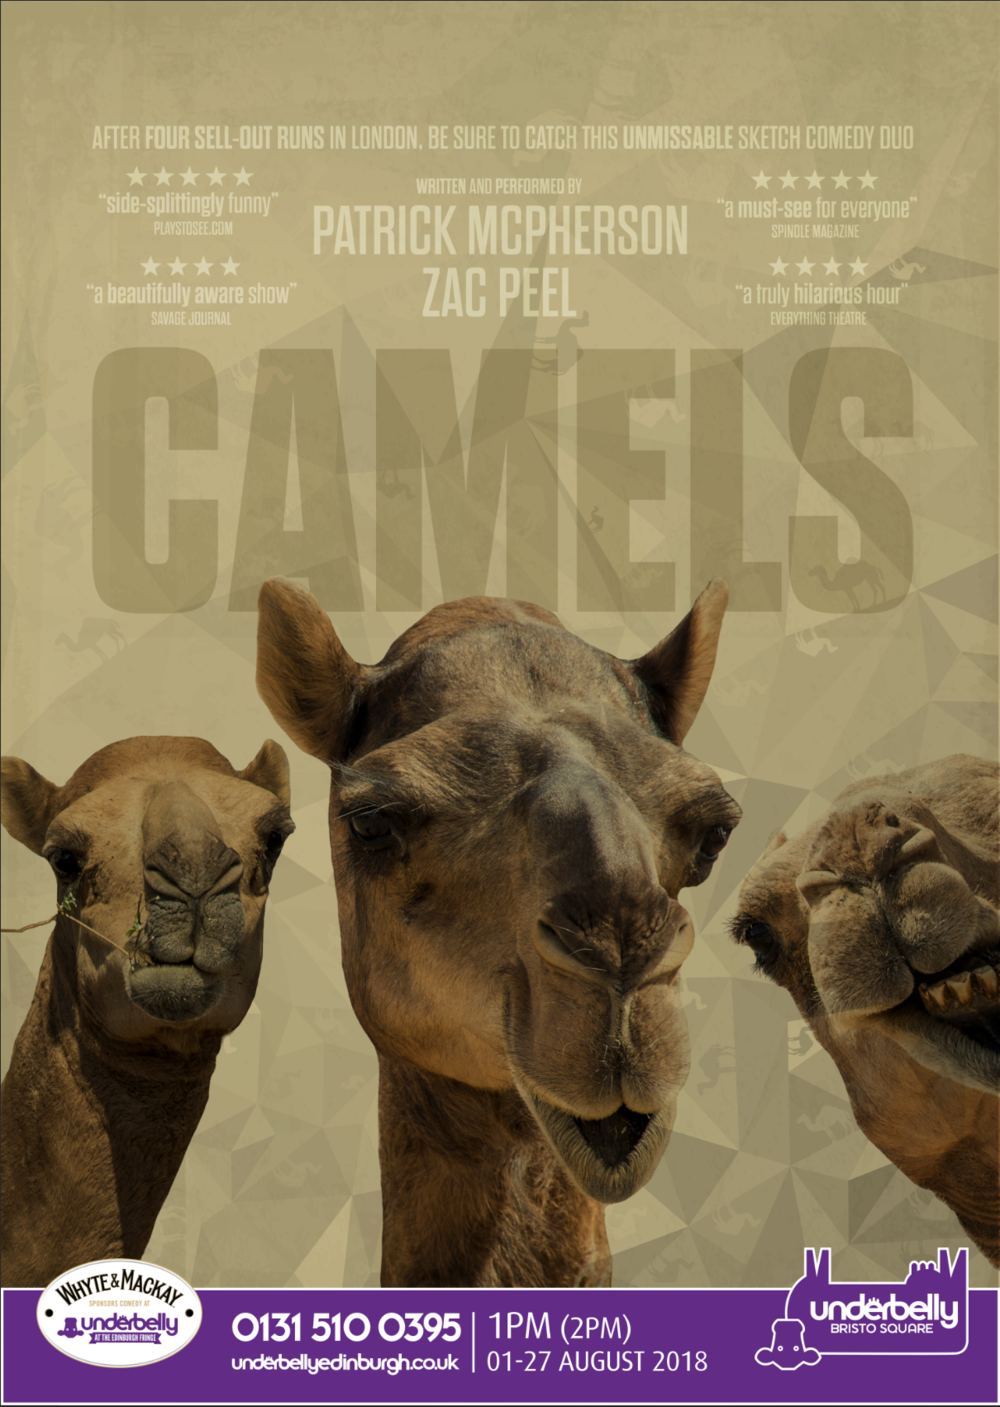 Camels Edinburgh 2018 - Underbelly Friesian Theatre, Bristo Square, Edinburgh, 1st - 27th August 2018Directors: Catrin Harris & Tom AmesGraphics: James CassirTechnician: Thom MorrissProducer: Zac Peel30 Performances / Over 3000 Tickets Sold3 LATE NIGHT Shows at the Bedlam Theatre20,000 Flyers + 100 Posters PrintedOpened The List Festival Party to an audience of 260Underbelly's 2nd best selling sketch show after Foil, Arms and Hog